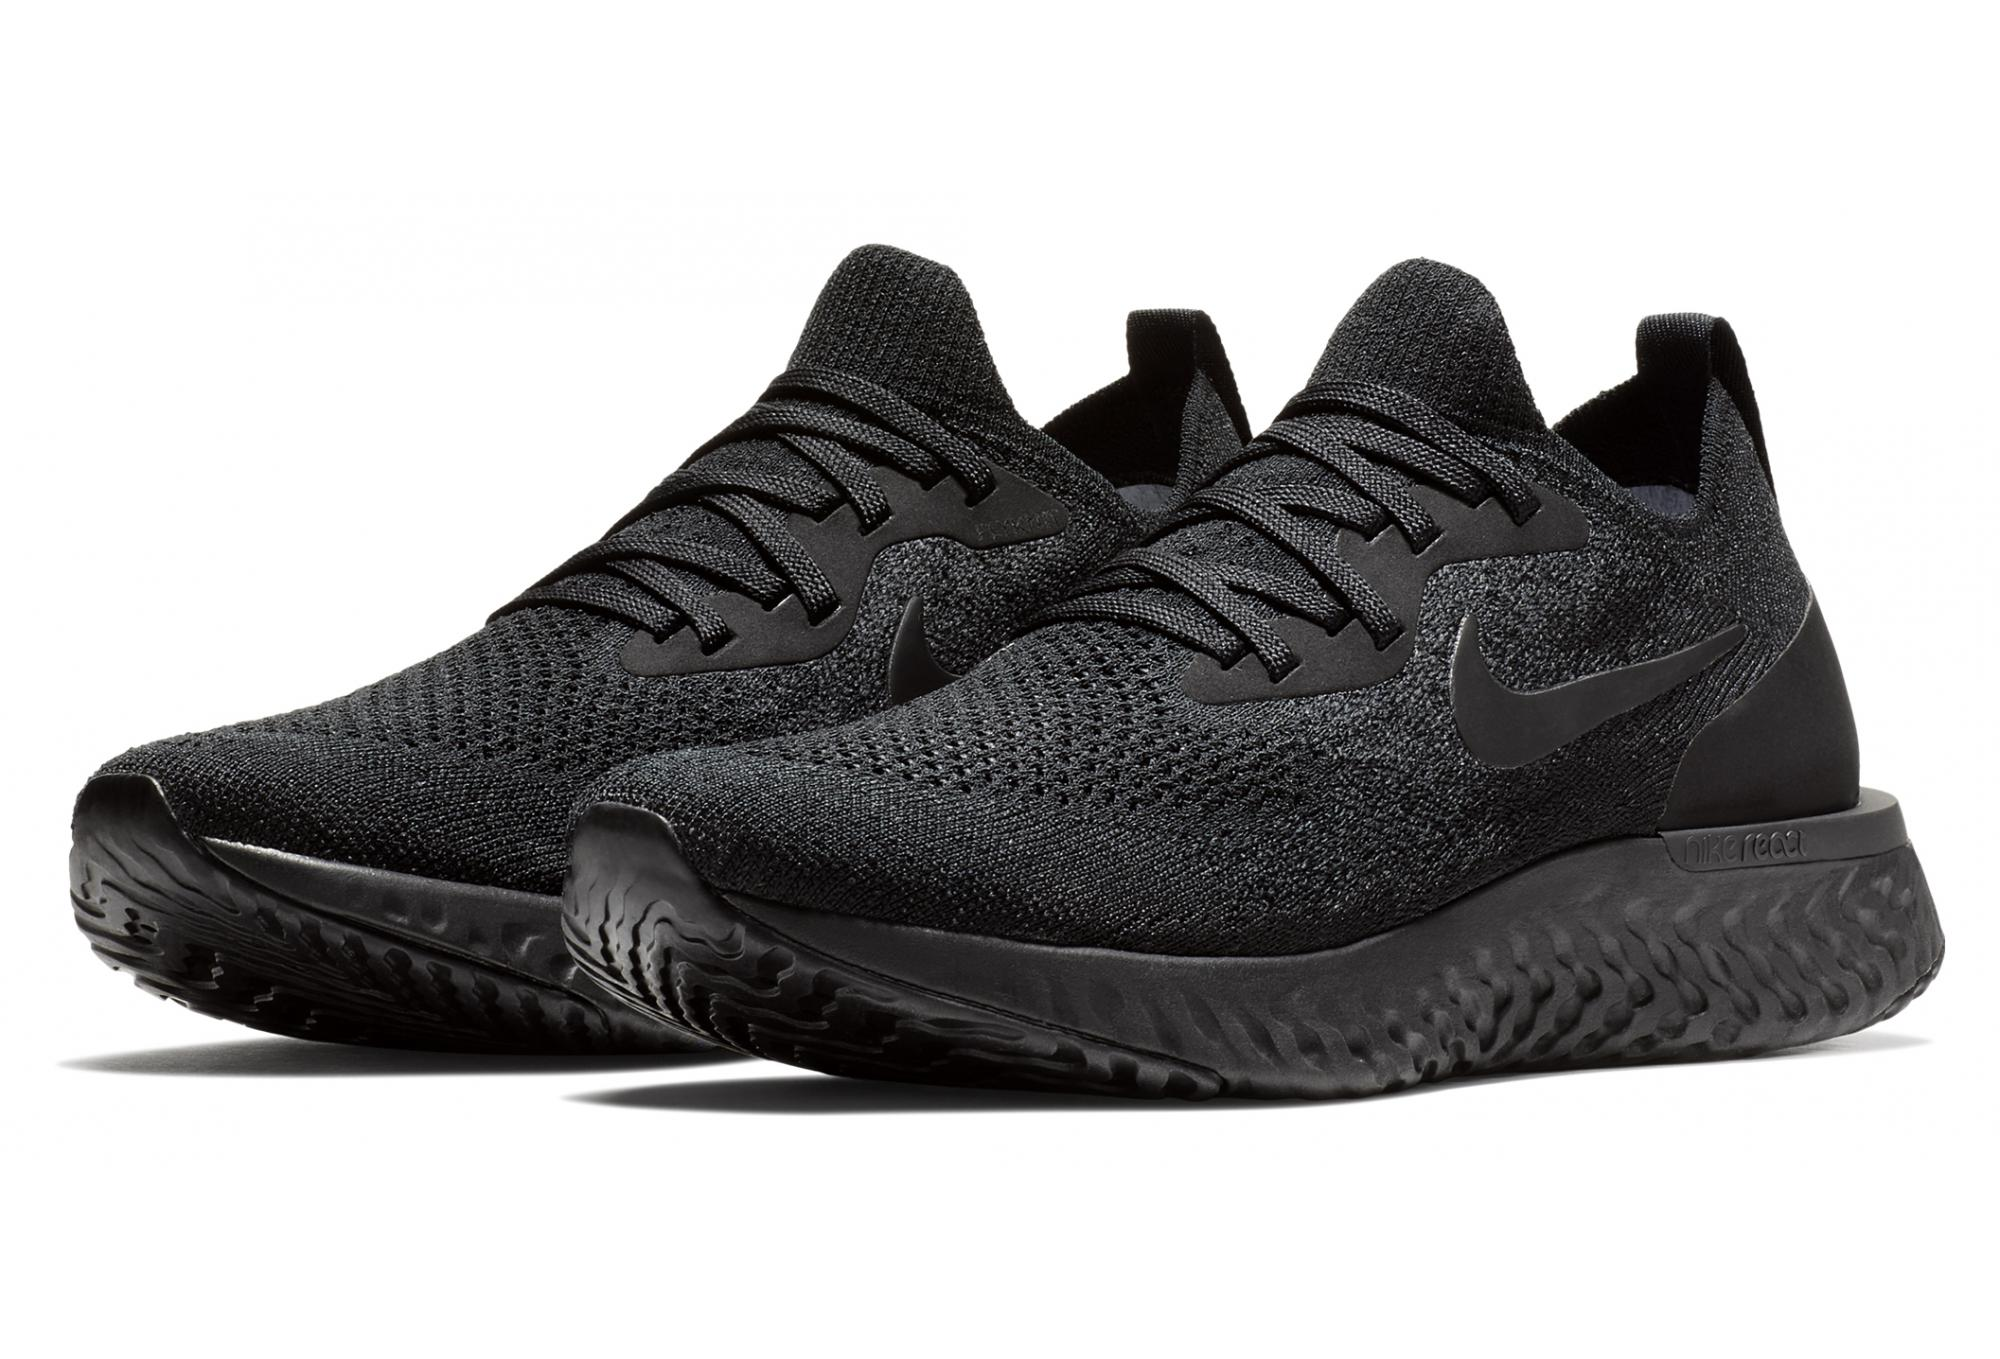 wholesale dealer 8098d 3fdf7 Nike Epic React Flyknit Women's Shoes Black | Alltricks.com